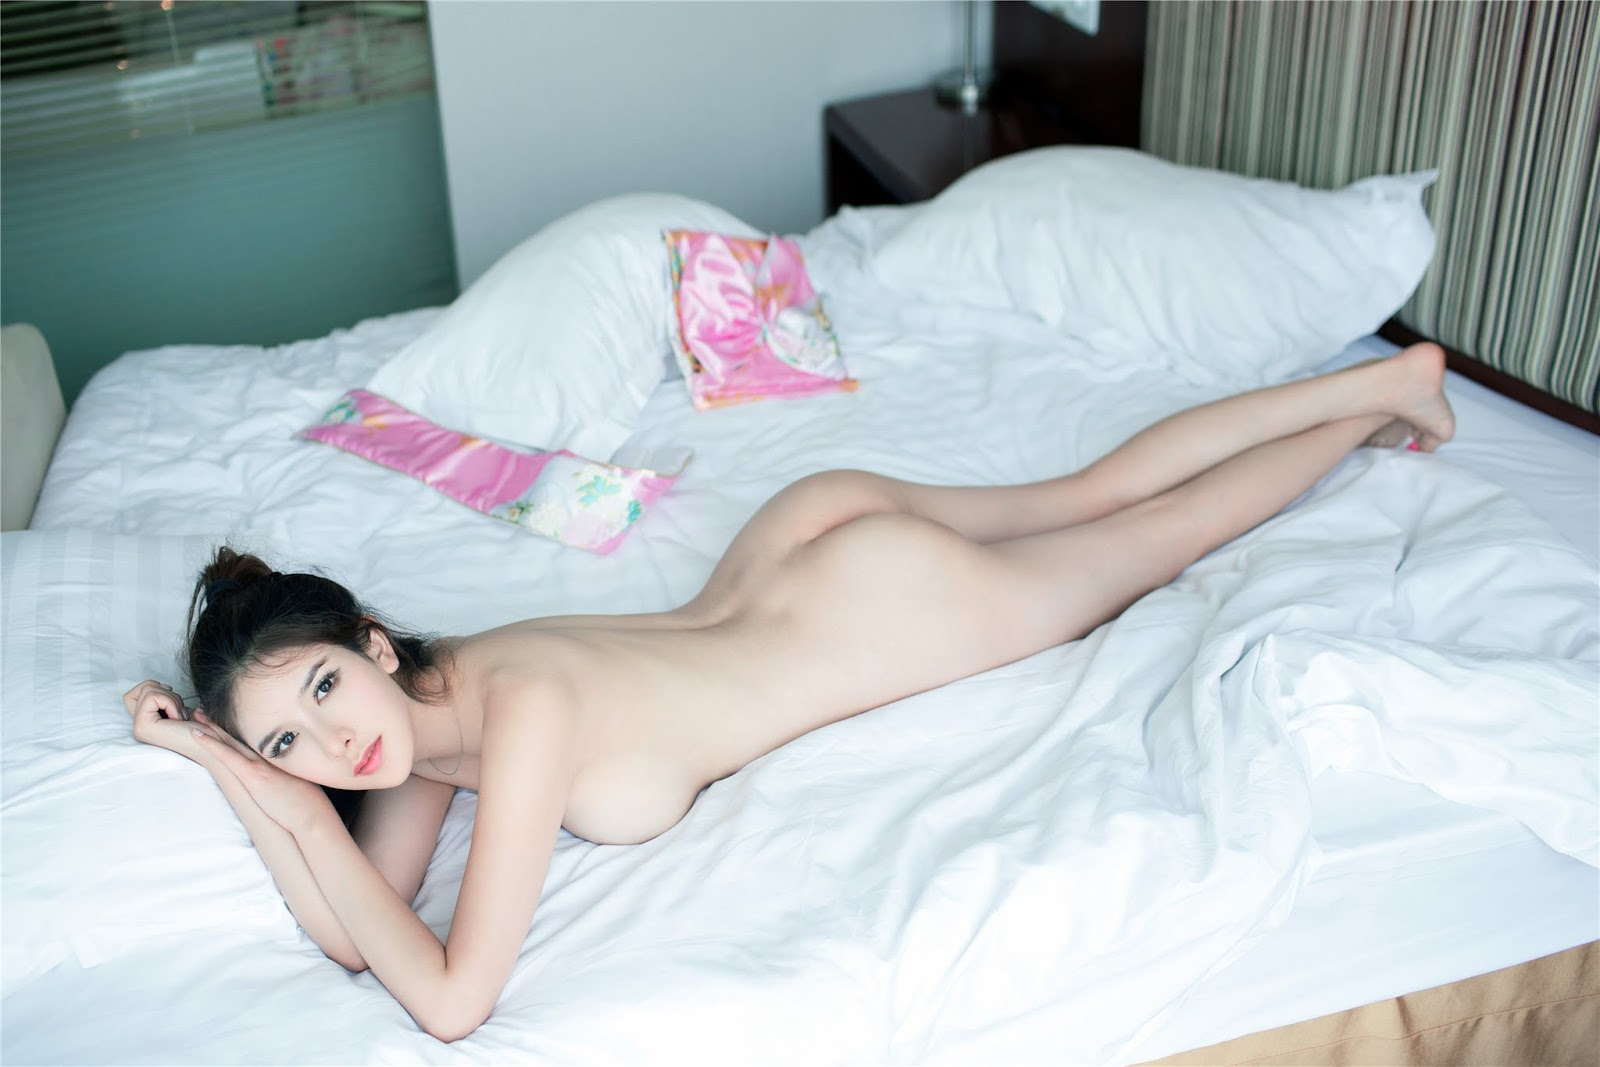 %252Be%252B%25C3%25B7%252B%25C2%25BB 28 - TUIGIRL NO.37 Sexy Hot Girl